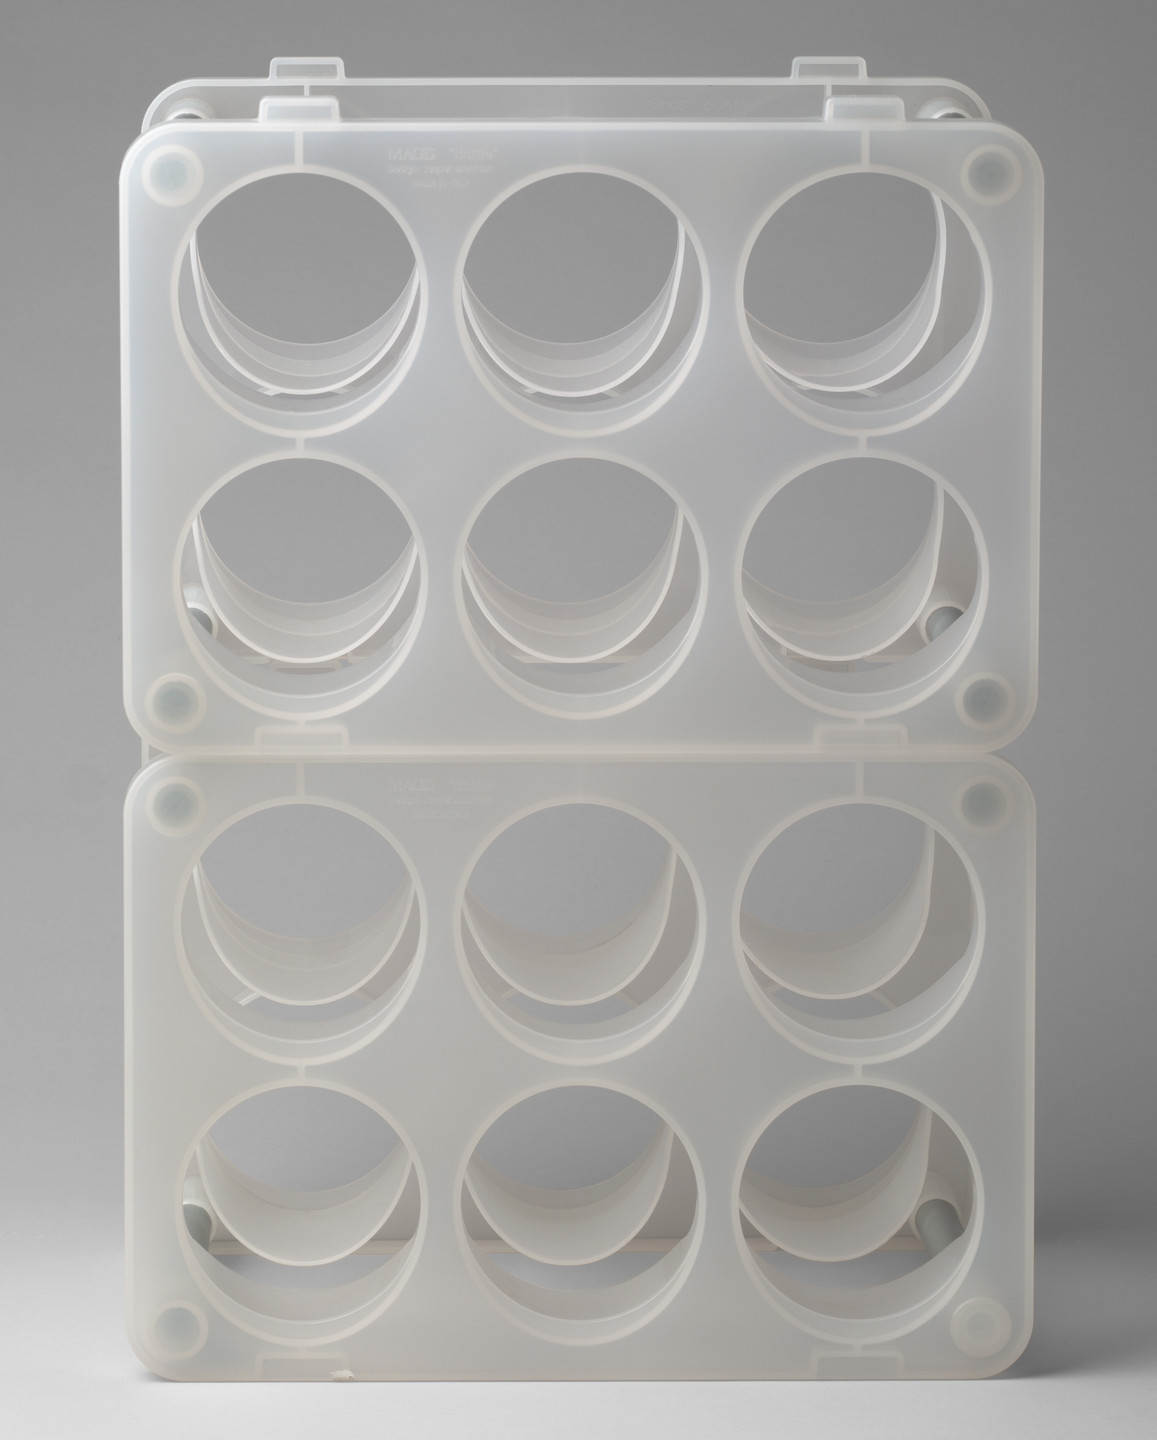 Jasper Morrison. Bottle Storage Module. 1993